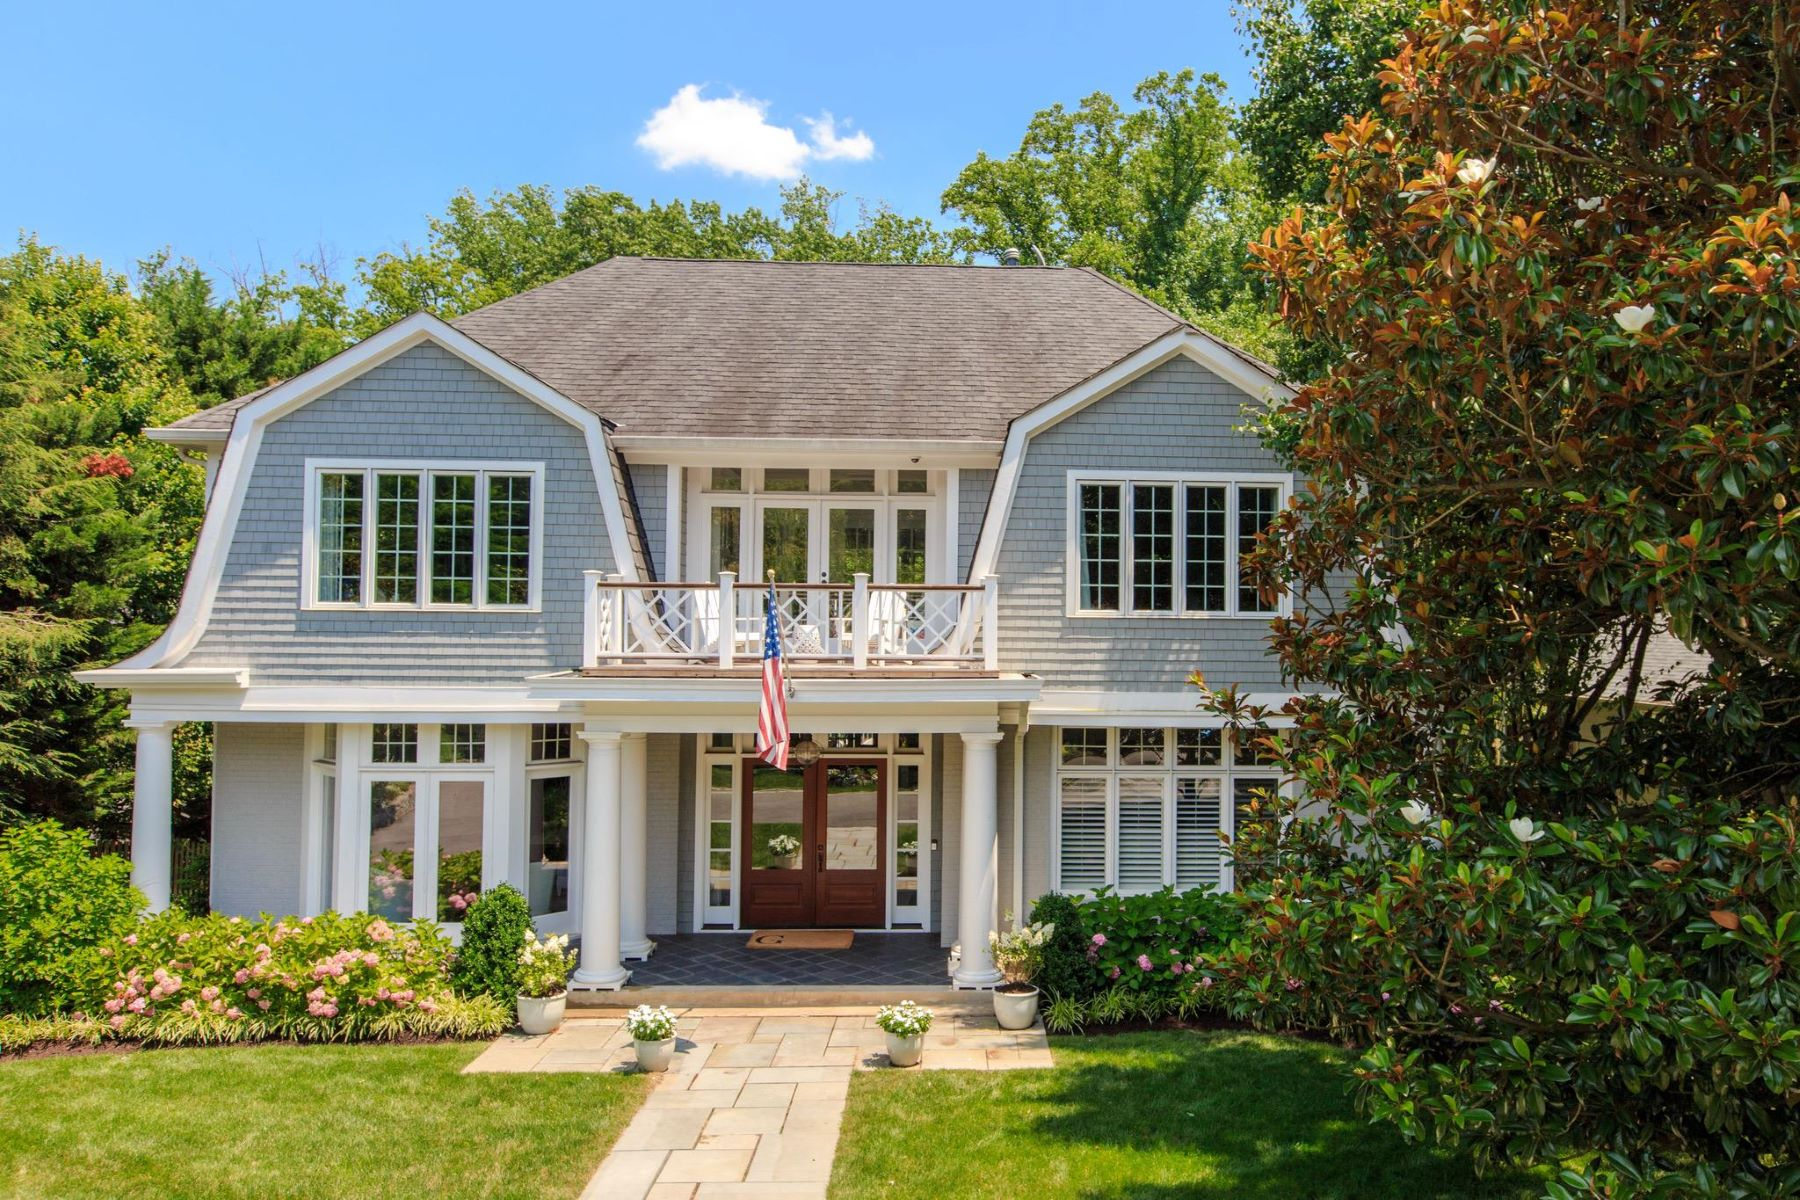 Single Family Homes for Active at 1933 Rockingham St McLean, Virginia 22101 United States